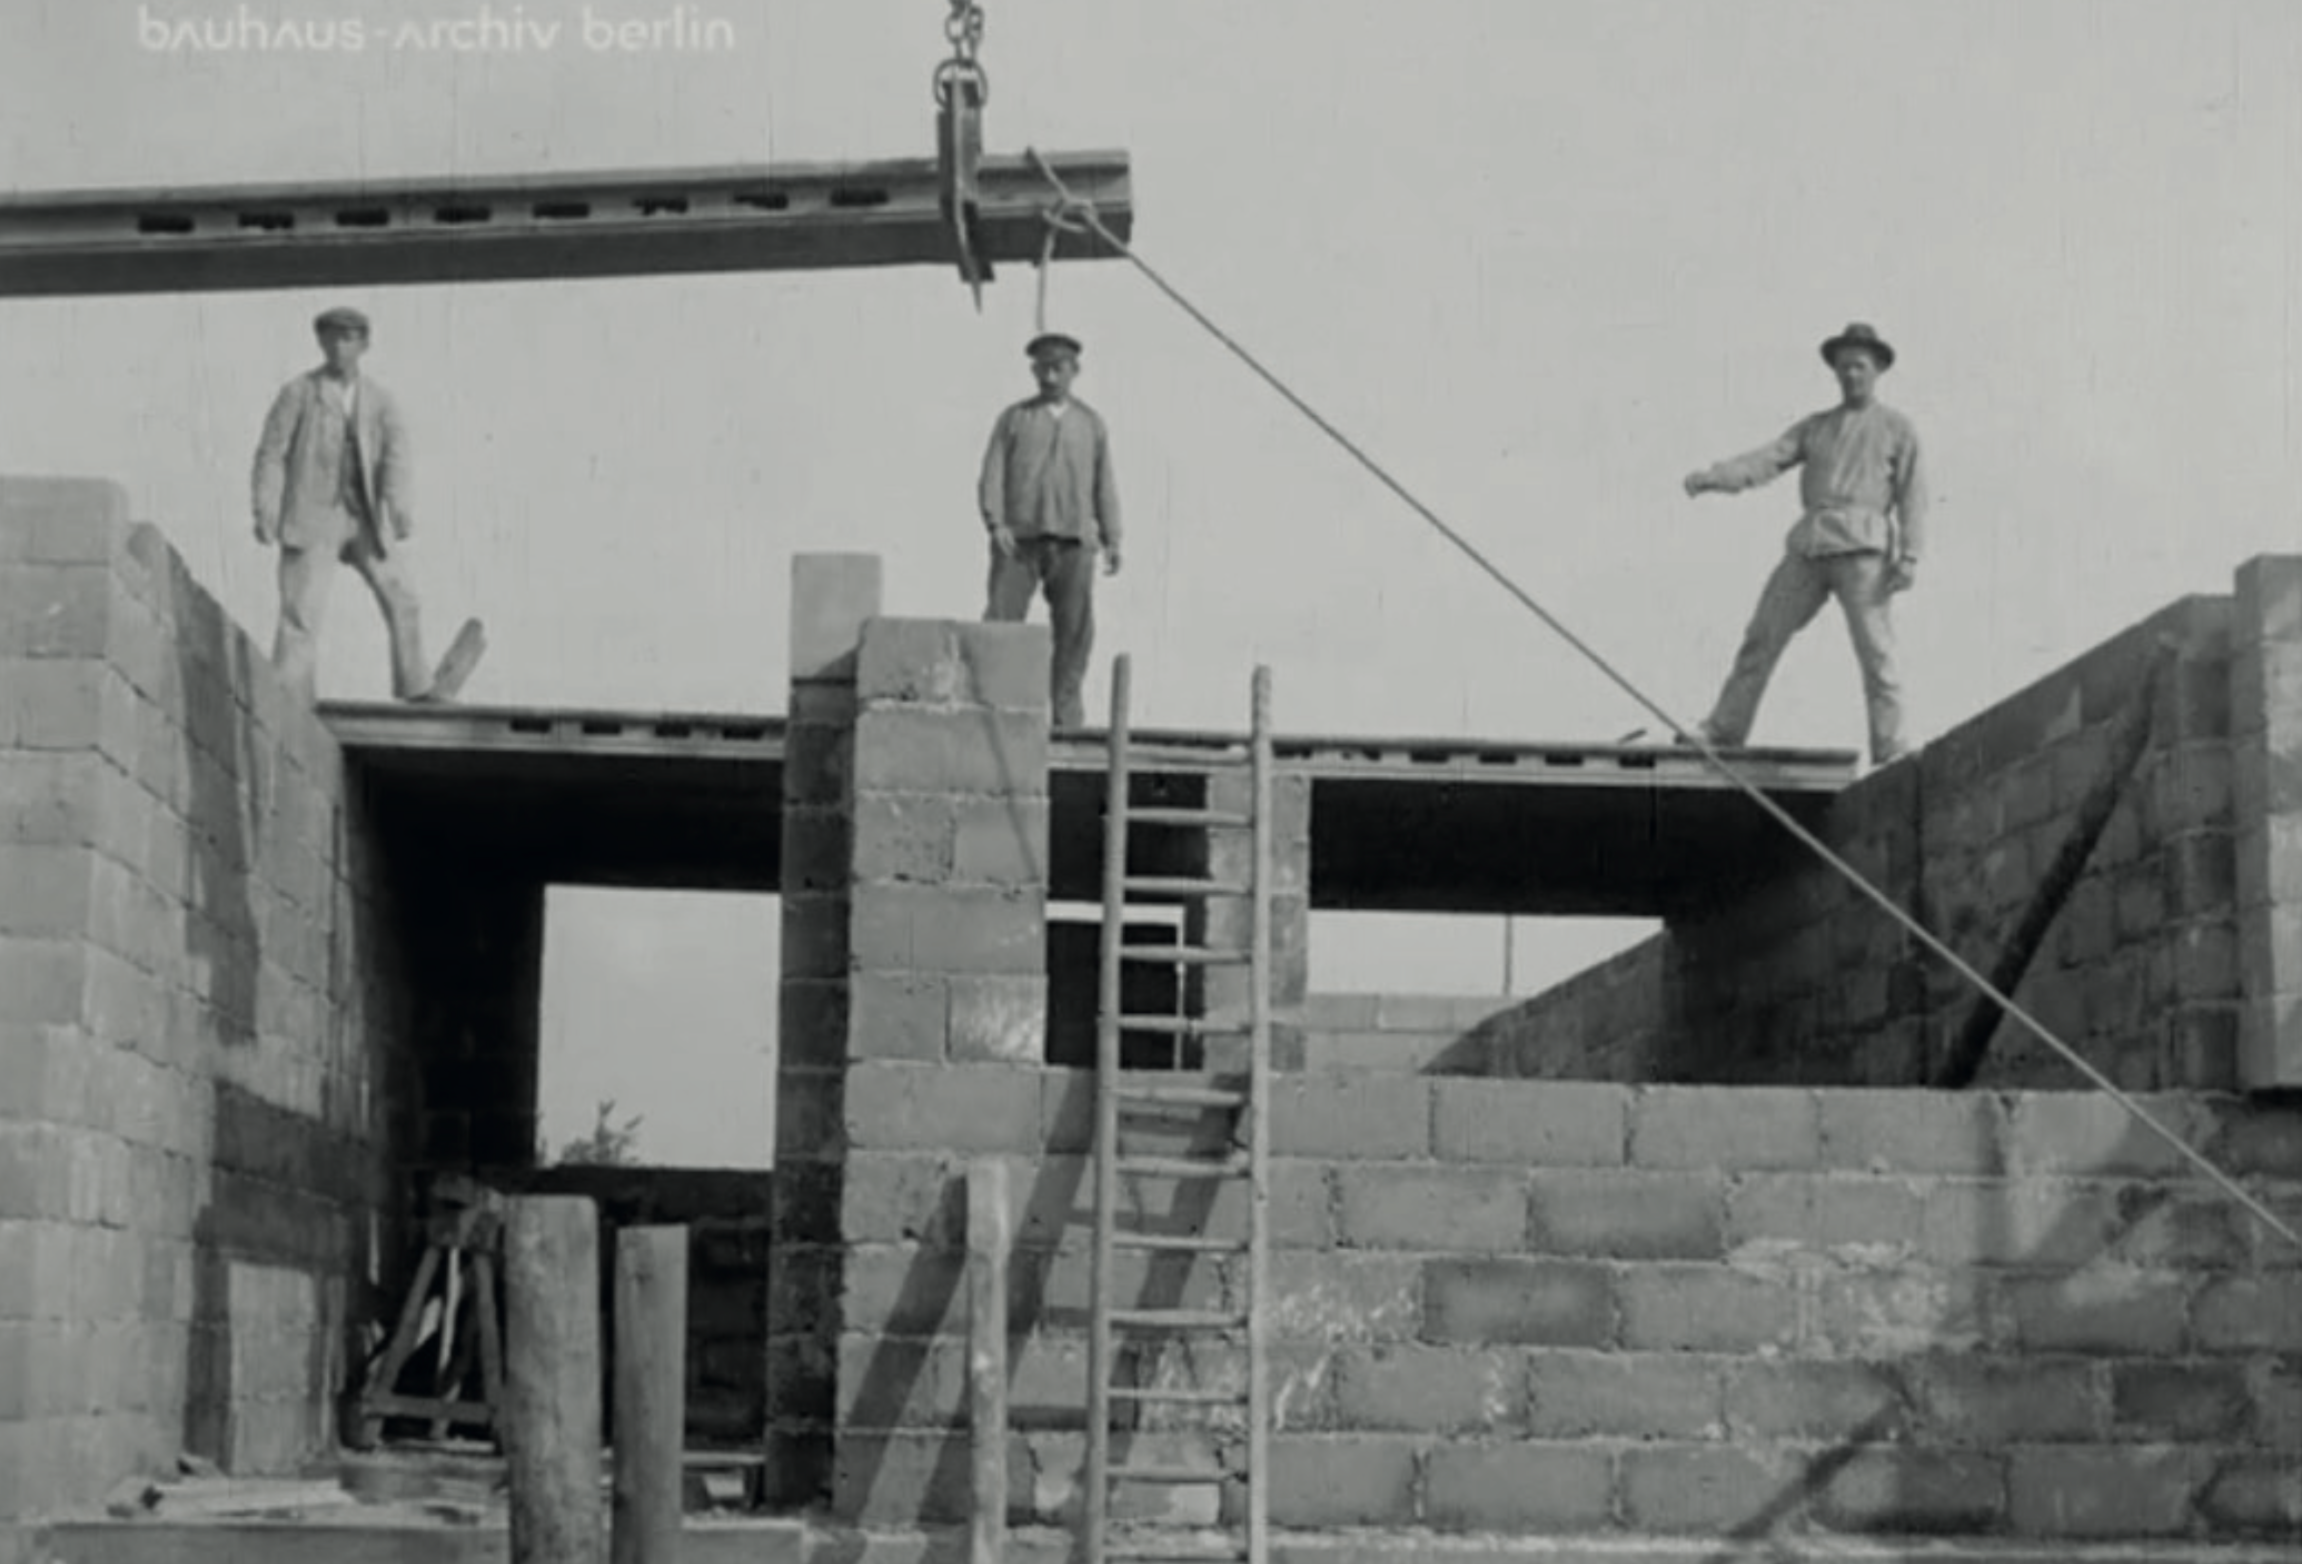 The instalment of the slab beams takes about 45 minutes. Image from: How to live healthily and economically? Film series in four episodes by Walter Gropius and the Humboldt film GMBH, 1926.